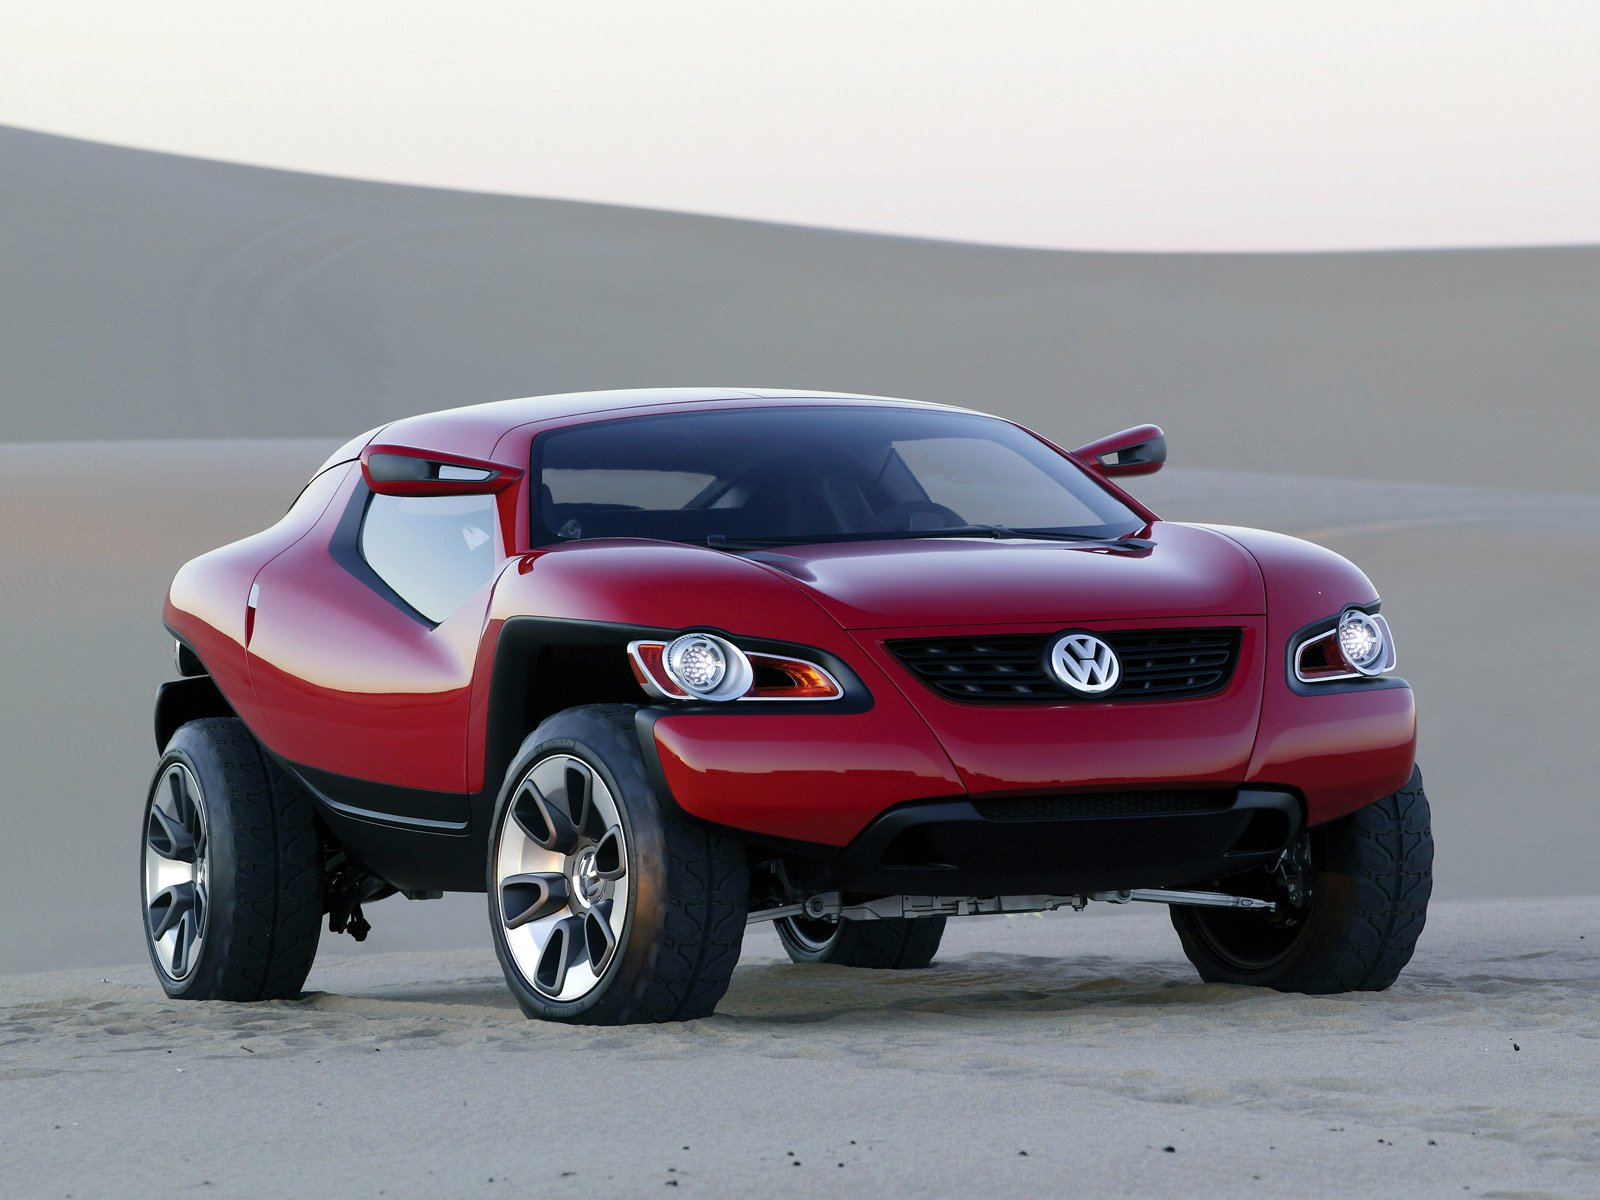 Volkswagen Concept T photo 9362